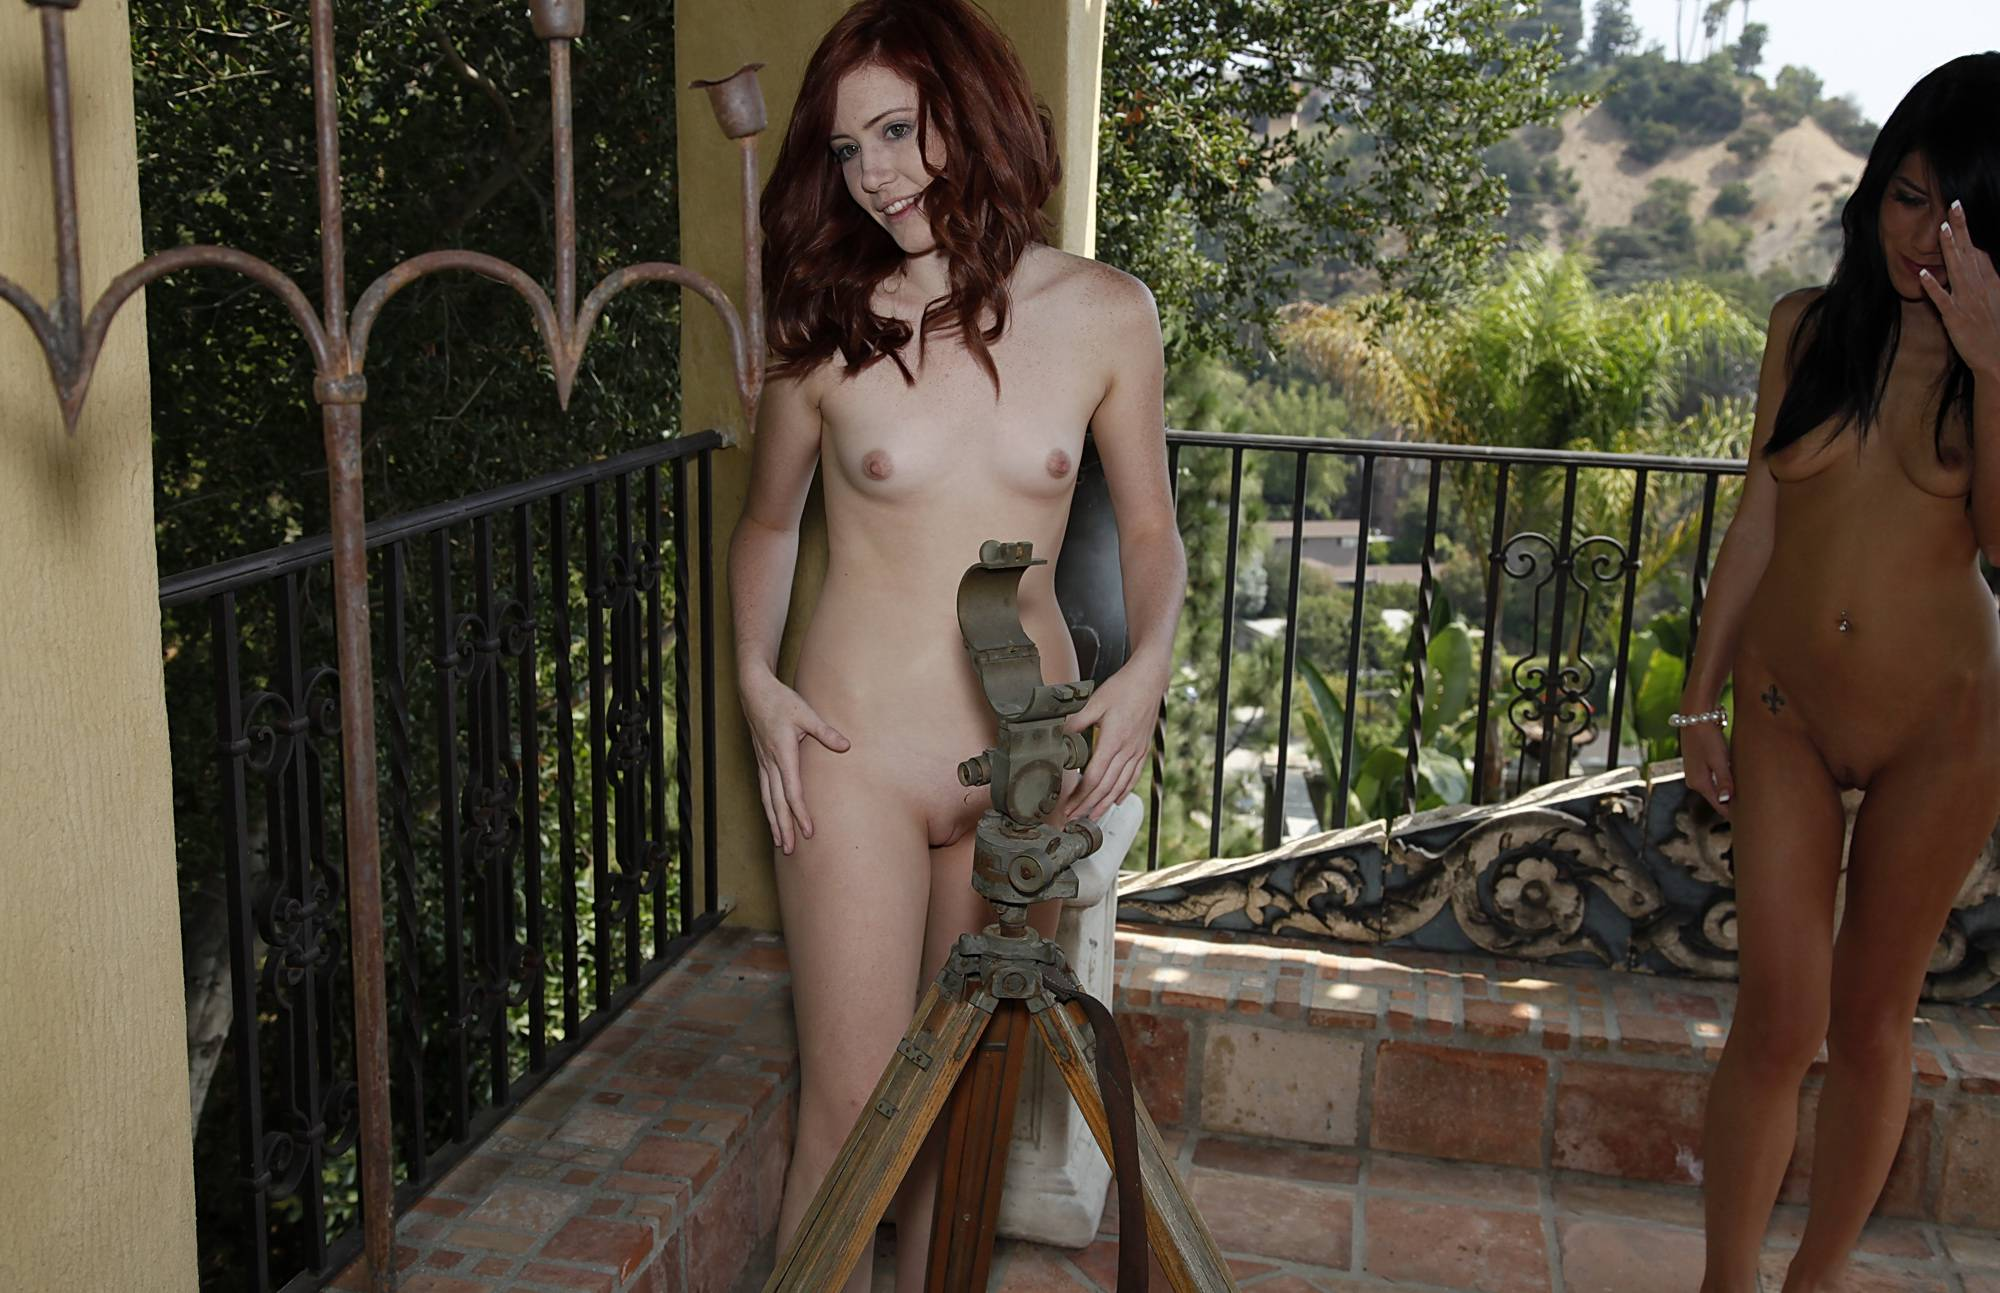 Nudist Pics Relaxing Inside The Patio - 1